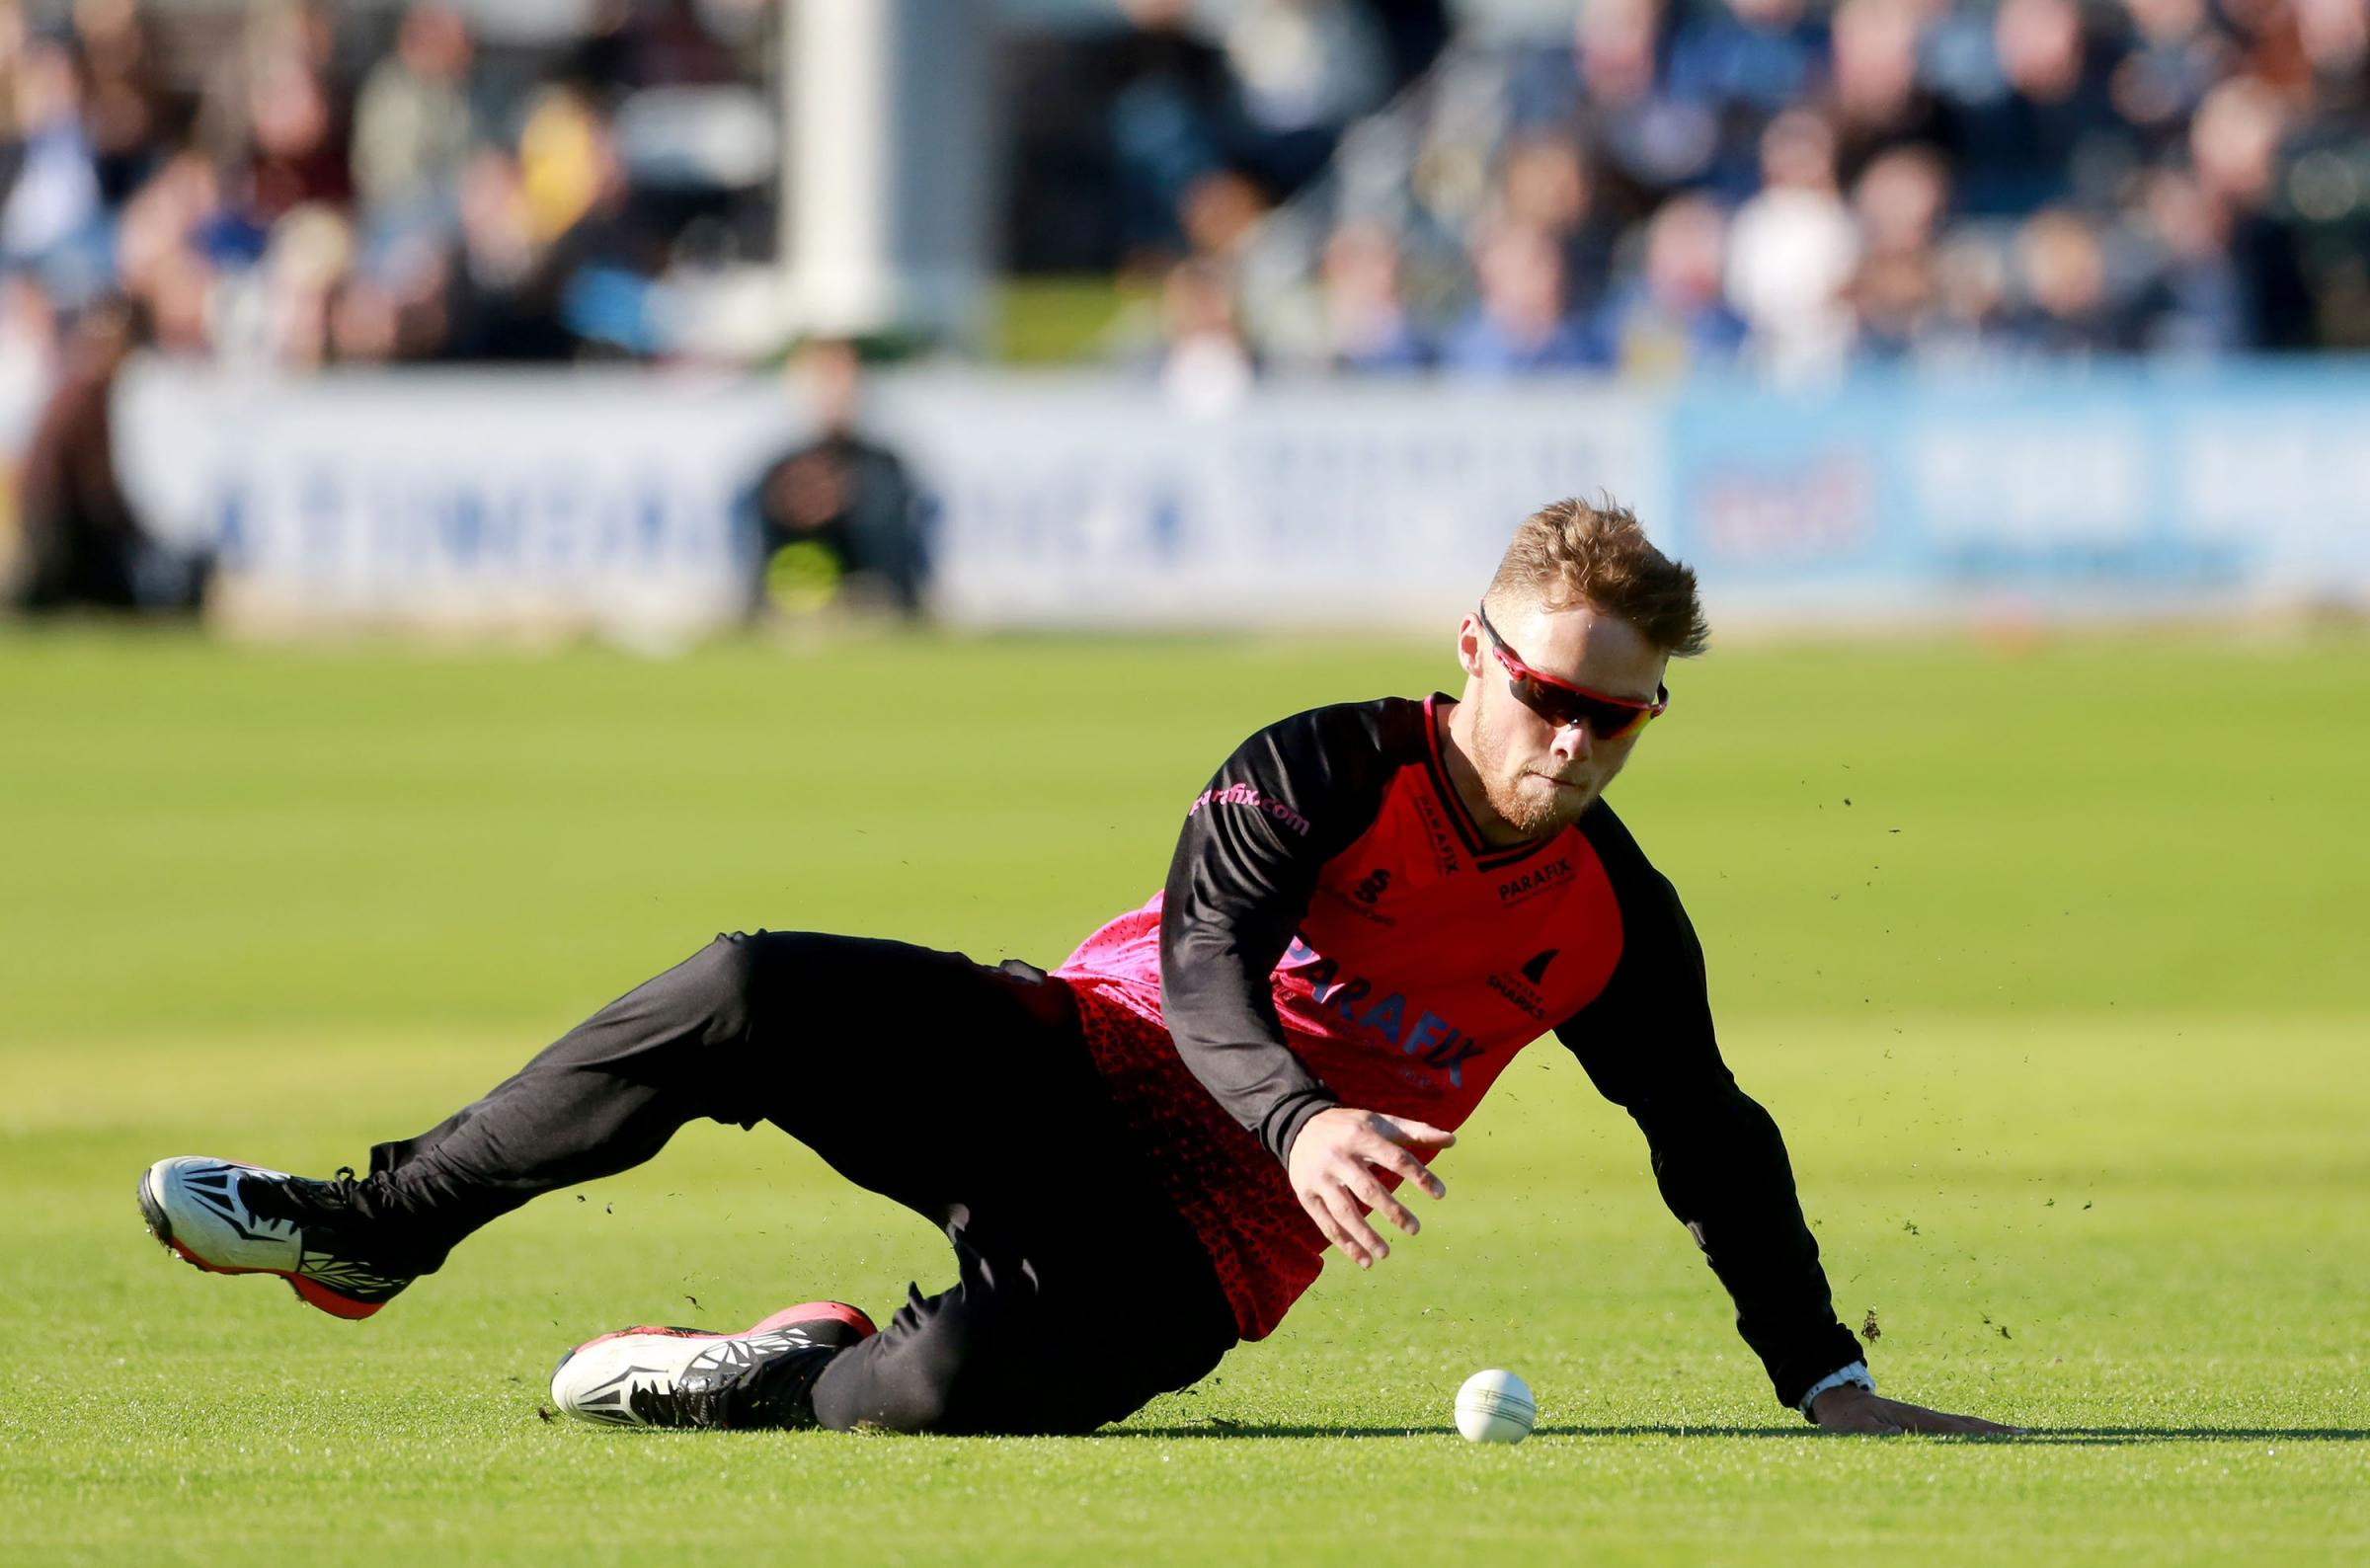 Phil Salt brings sharp fielding to the Sussex T20 team